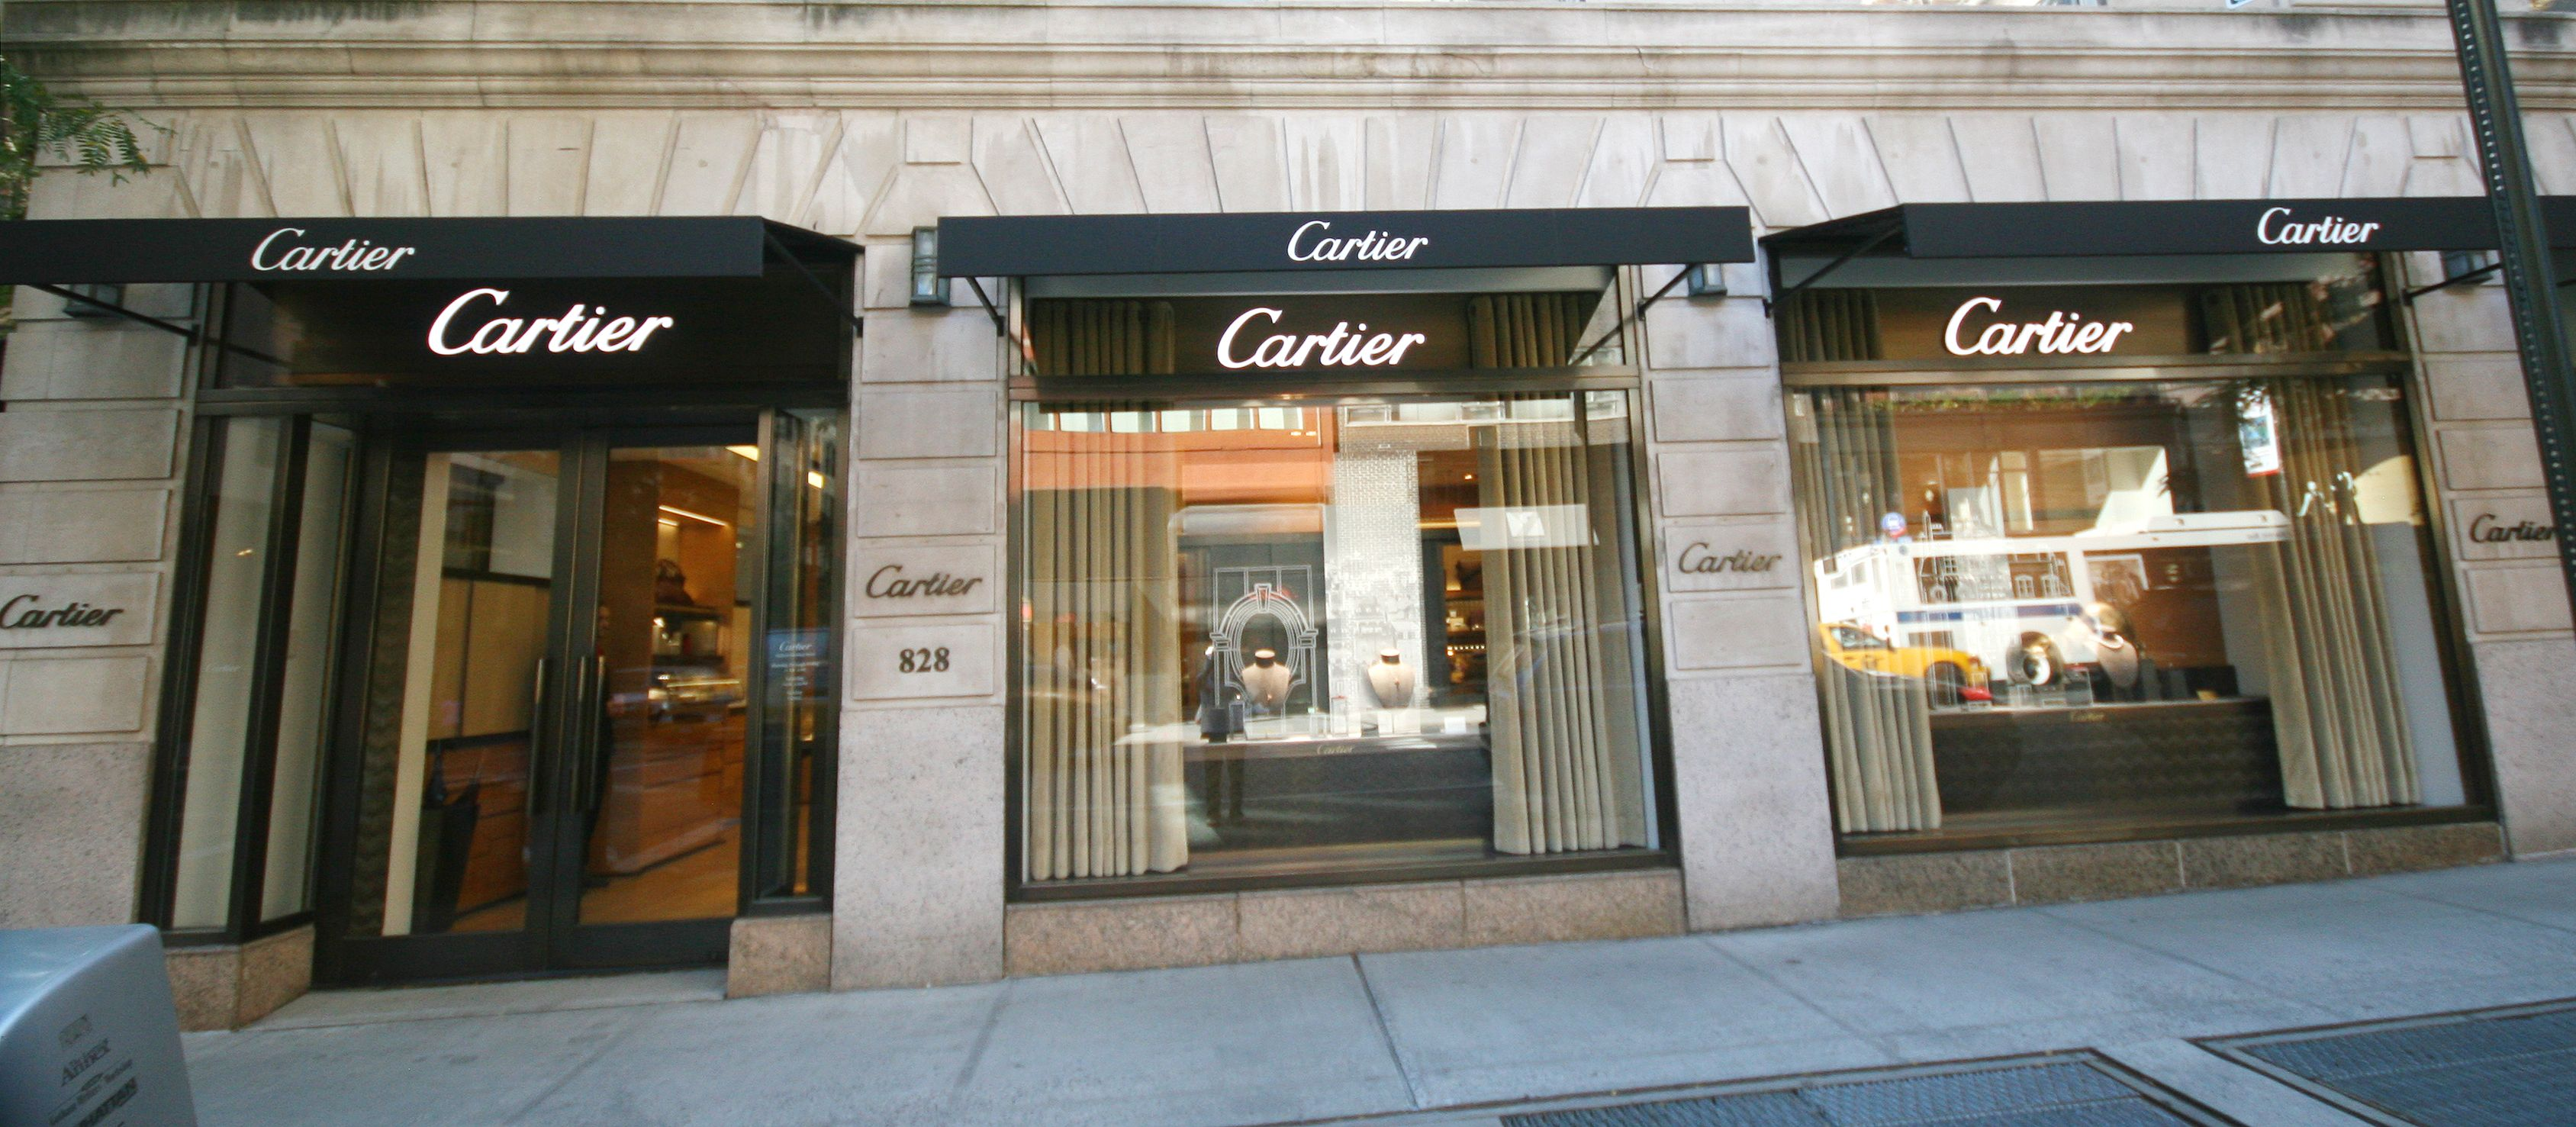 New Awnings New Look For Cartier S On 69th Street And Madison Avenue Nyc Designed And Fabricated By Hudson Awning Sign Co Madison Avenue Design Street